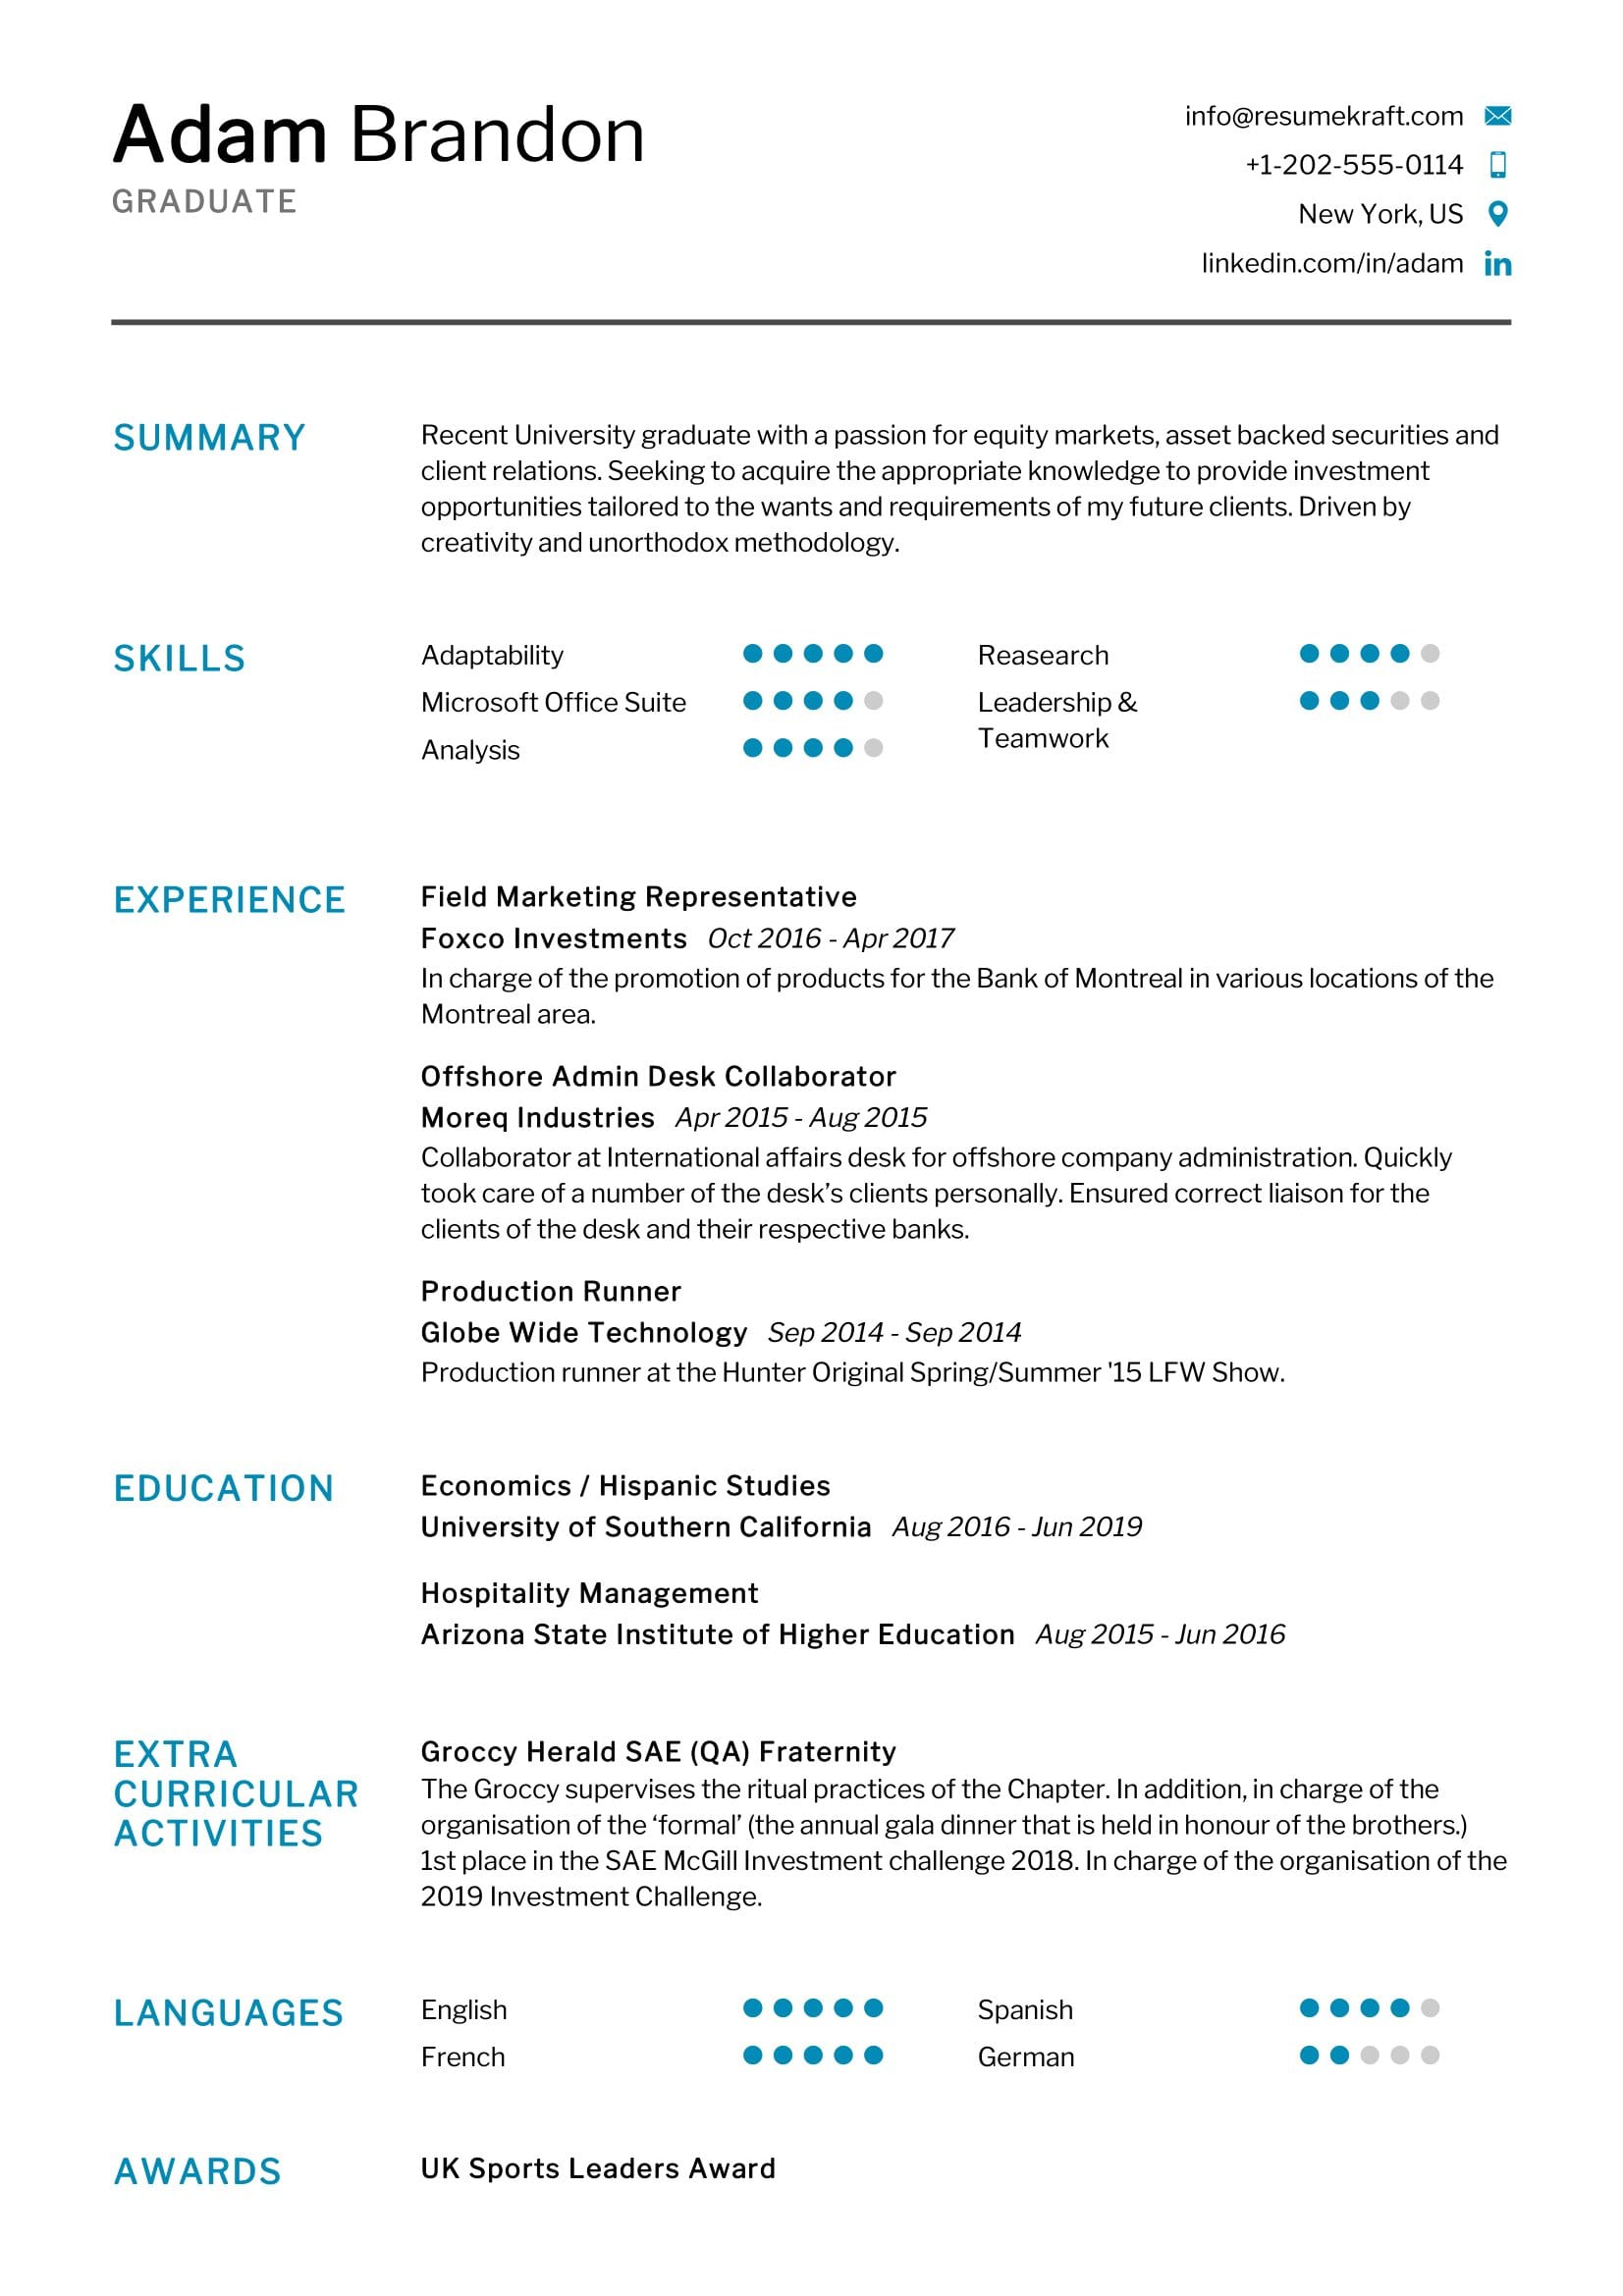 fresh graduate resume sample resumekraft best for medical examples social media Resume Best Resume For Fresh Graduate